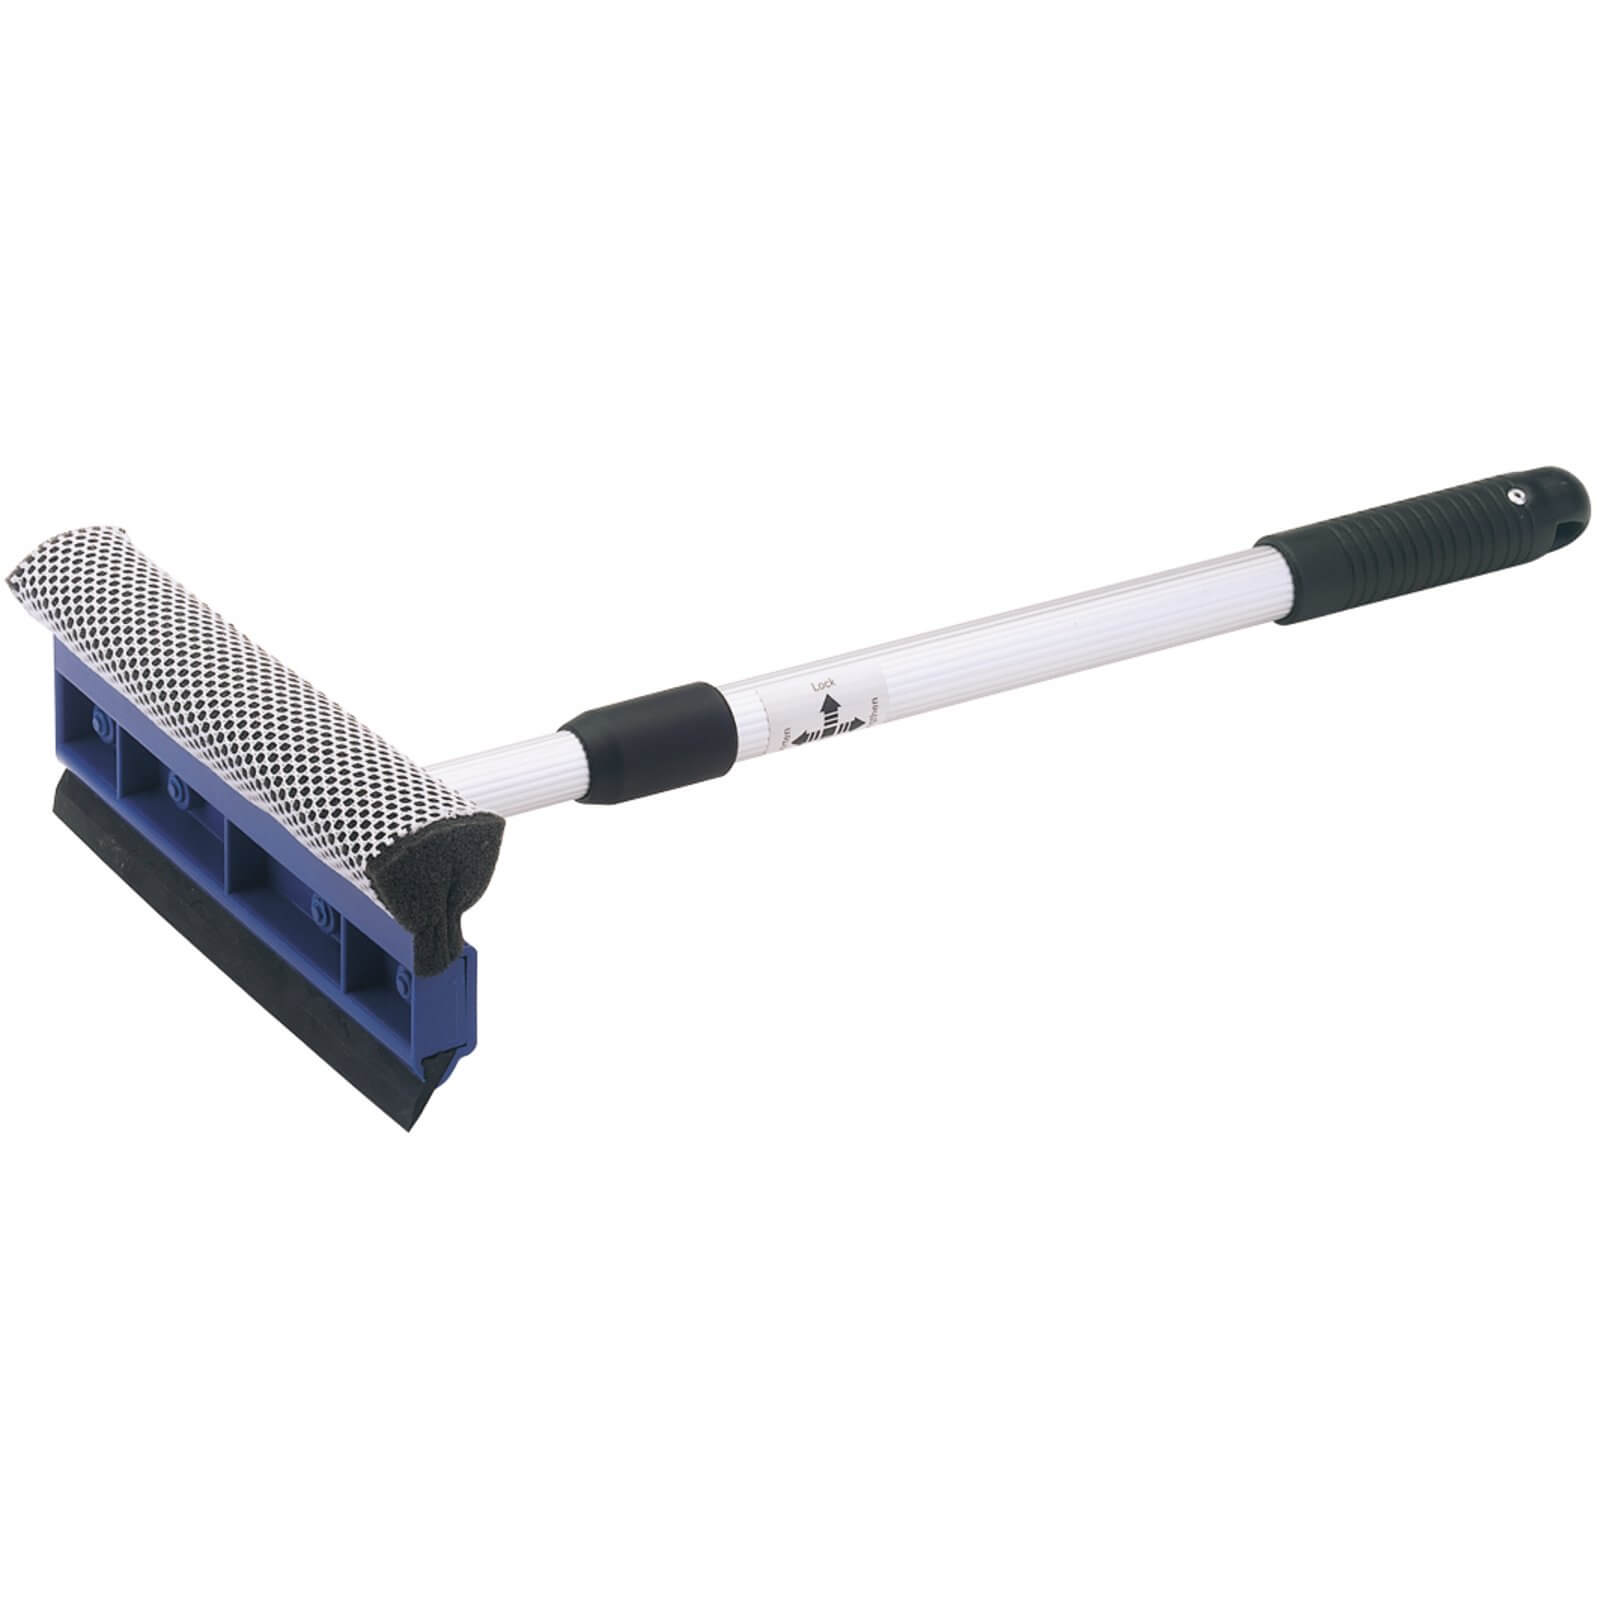 Image of Draper Telescopic Handle Squeegee & Sponge 200mm